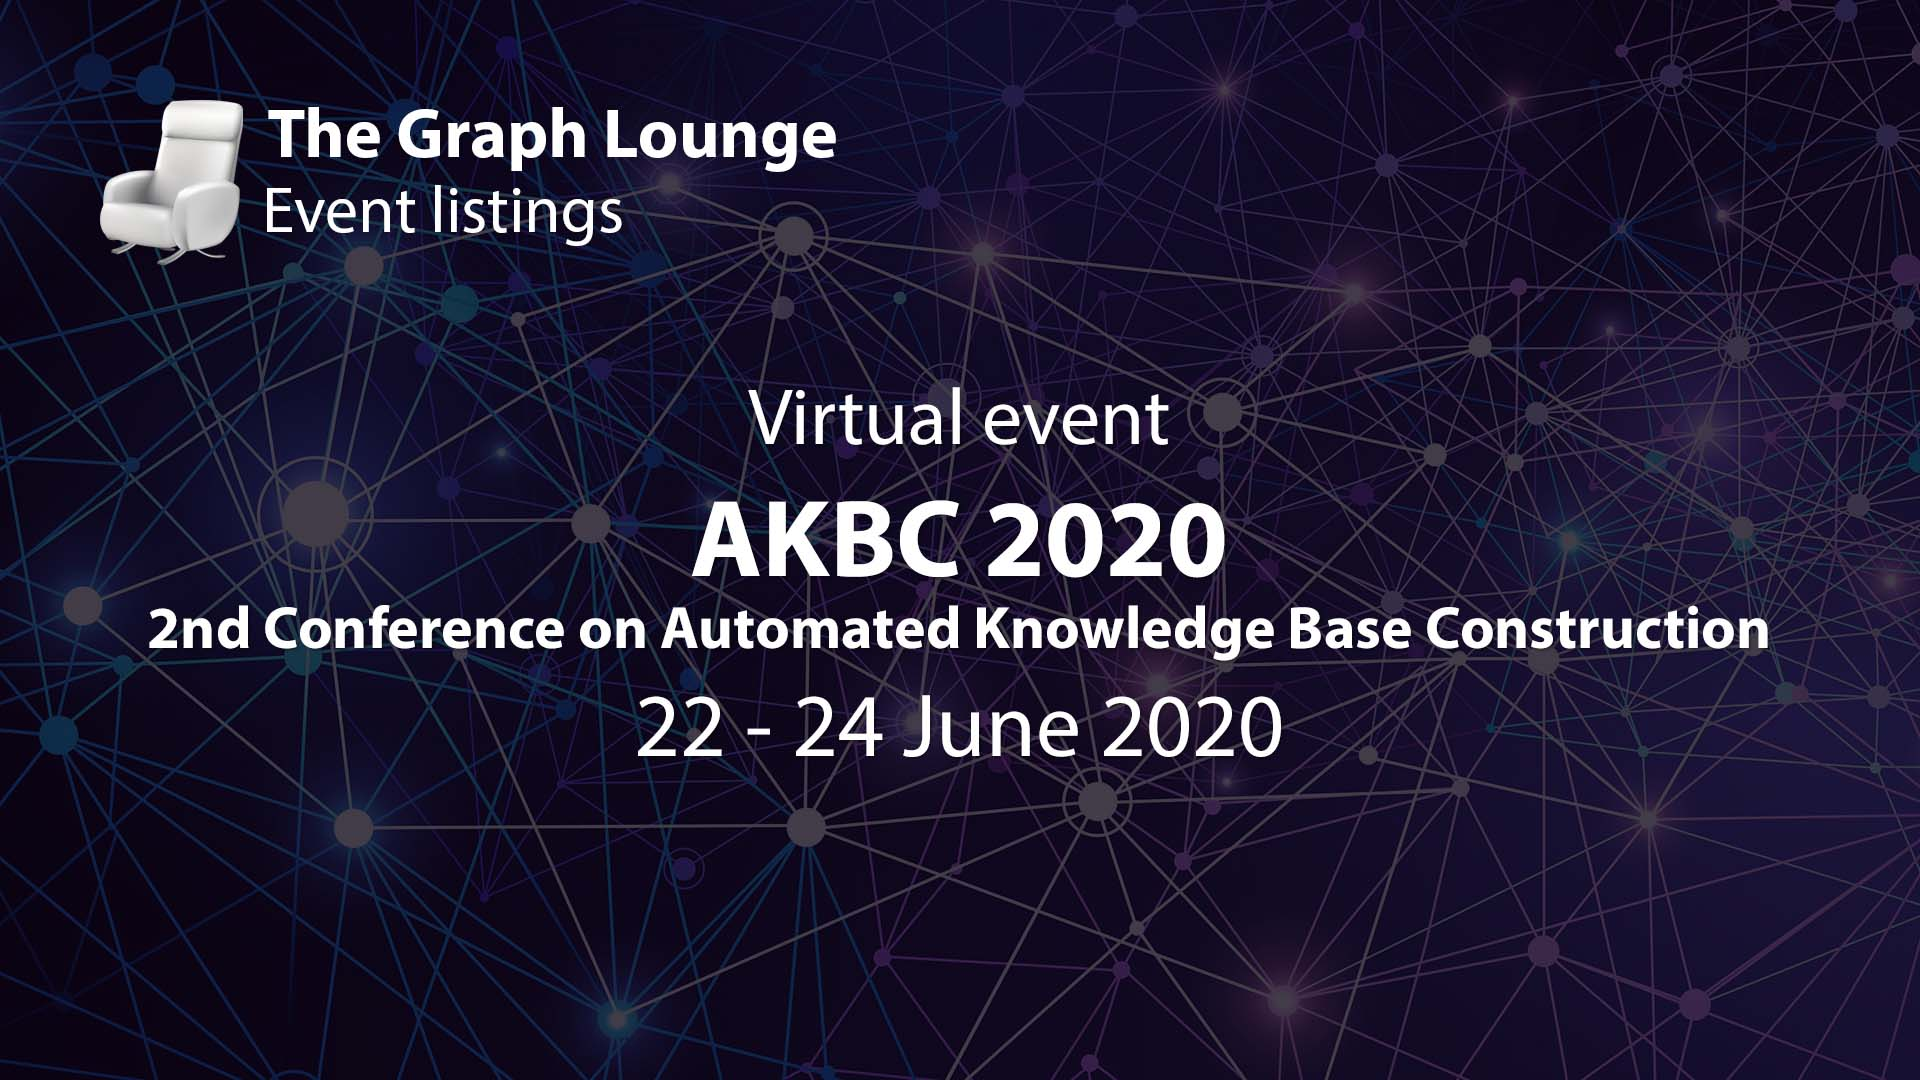 AKBC 2020 (2nd Conference on Automated Knowledge Base Construction)